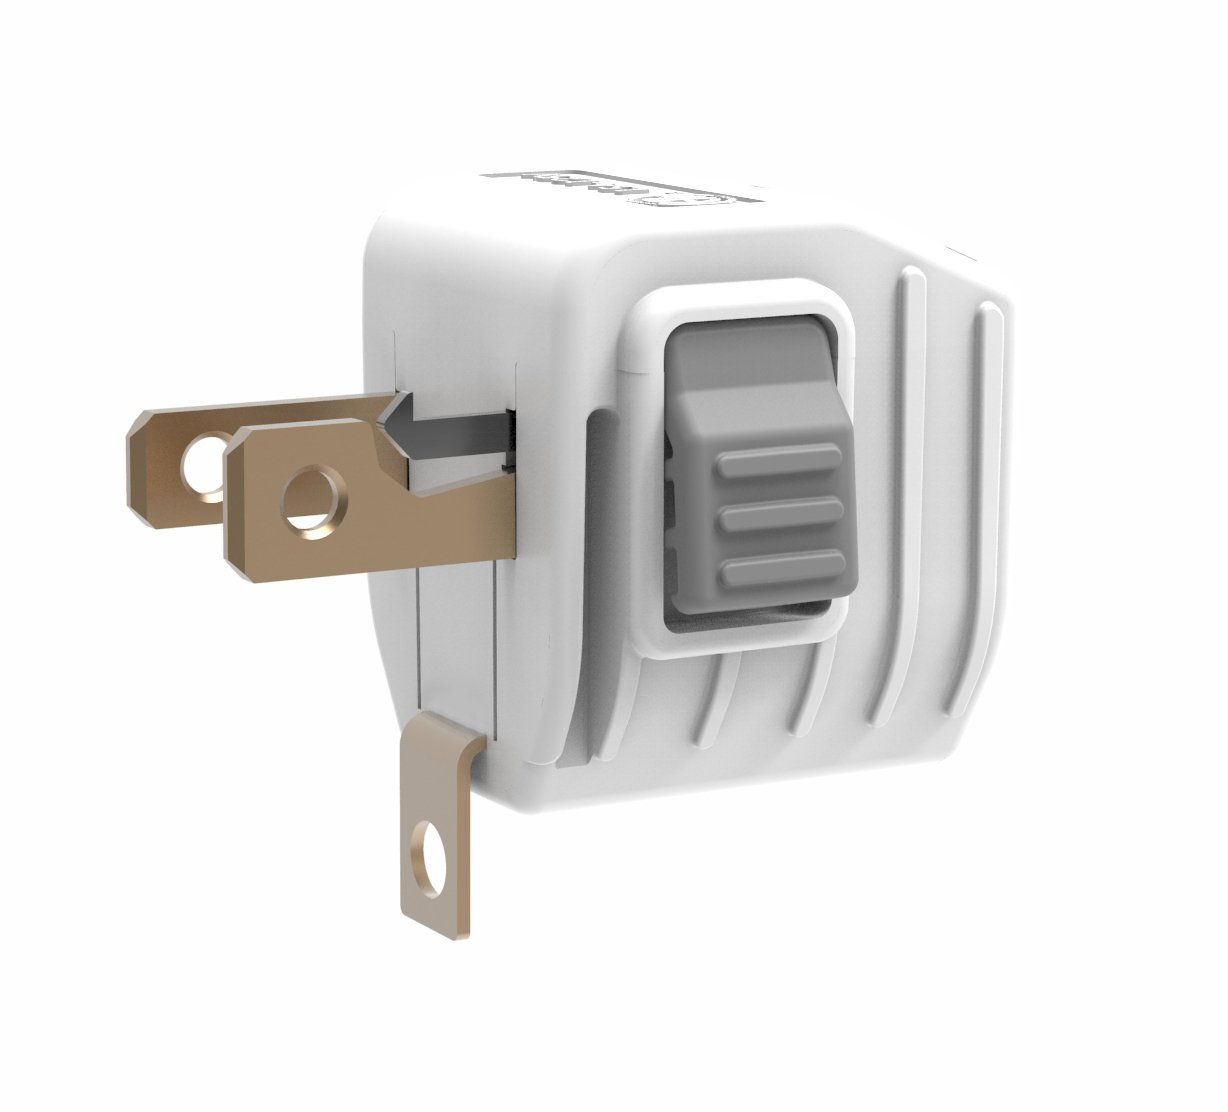 Amazon.com: LOCK in PLUG - lock & secure any plug/cable/cord/charger ...